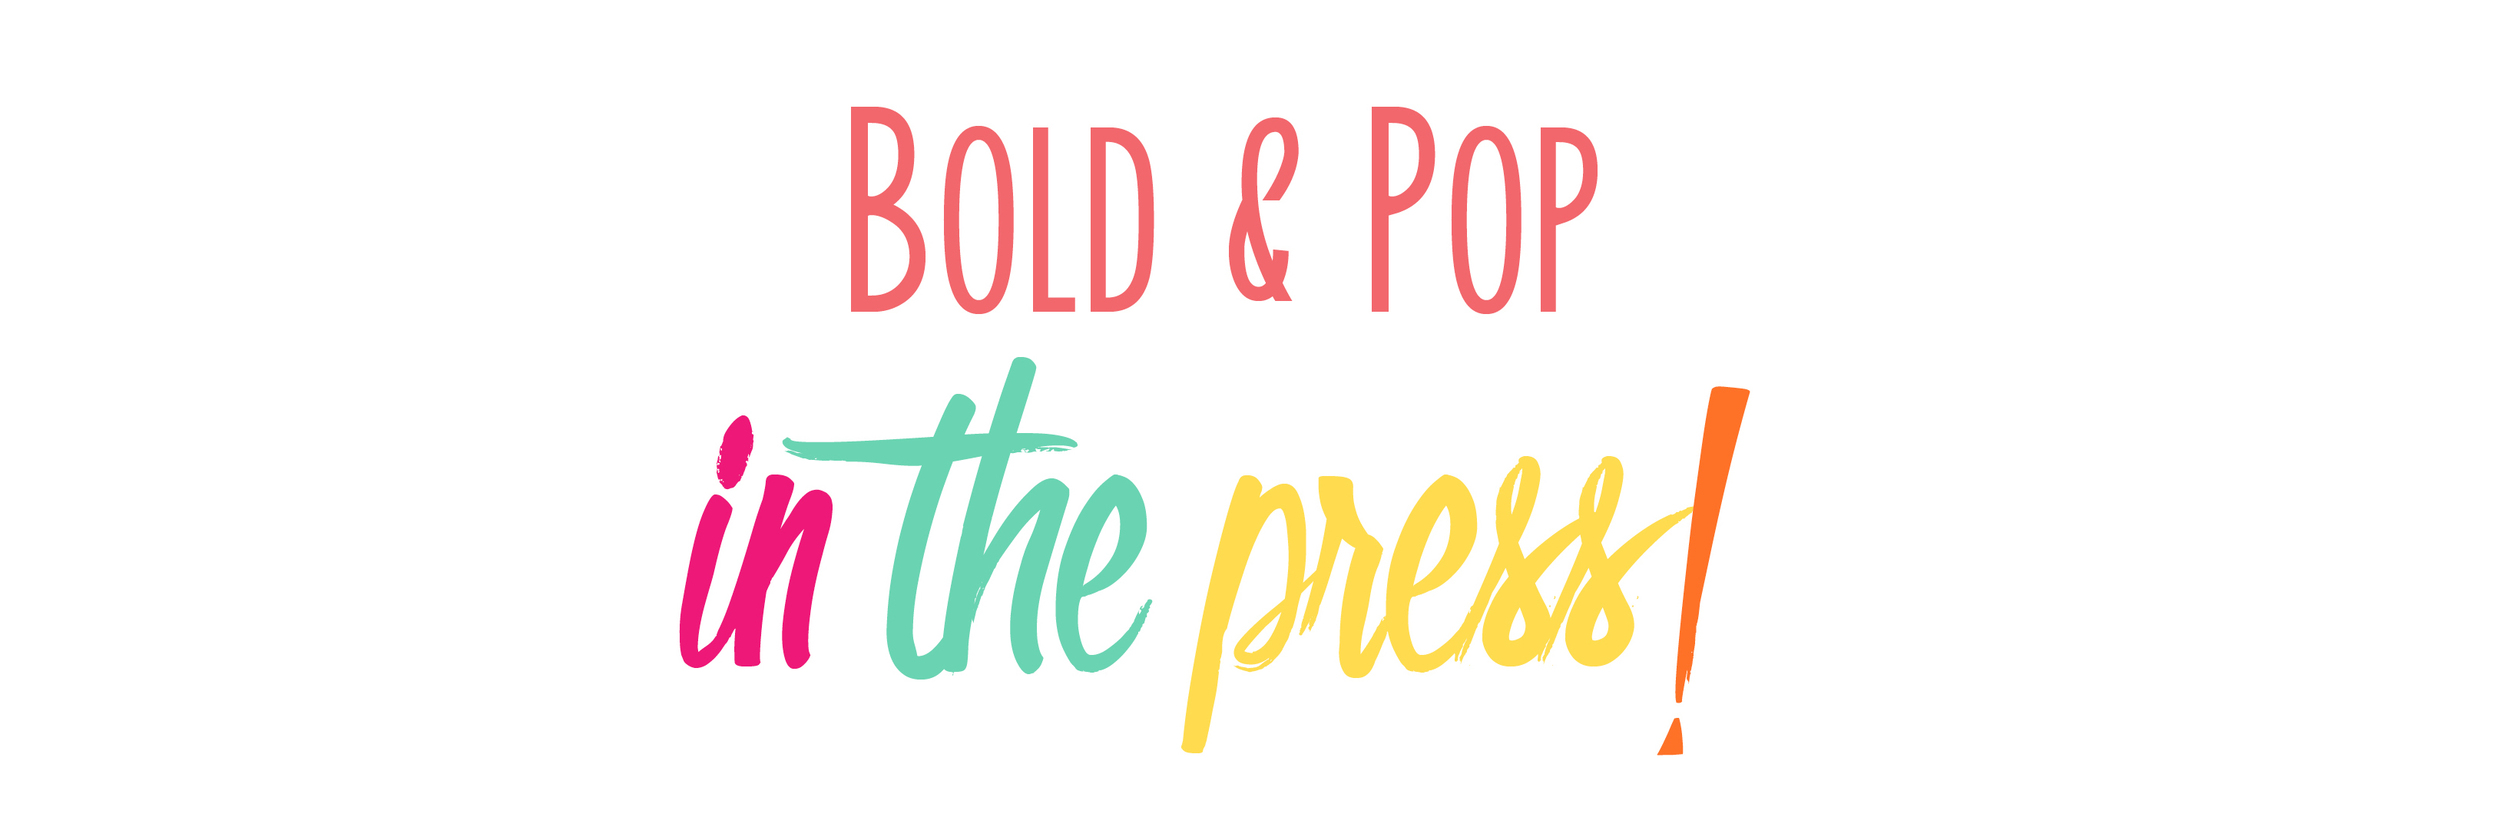 Bold & Pop :  Social Media, Branding, Squarespace Website Design Collective | Co-founders Anna Osgoodby and Mallory Musante | Social Media Professionals | Branding and Squarespace Web Designers